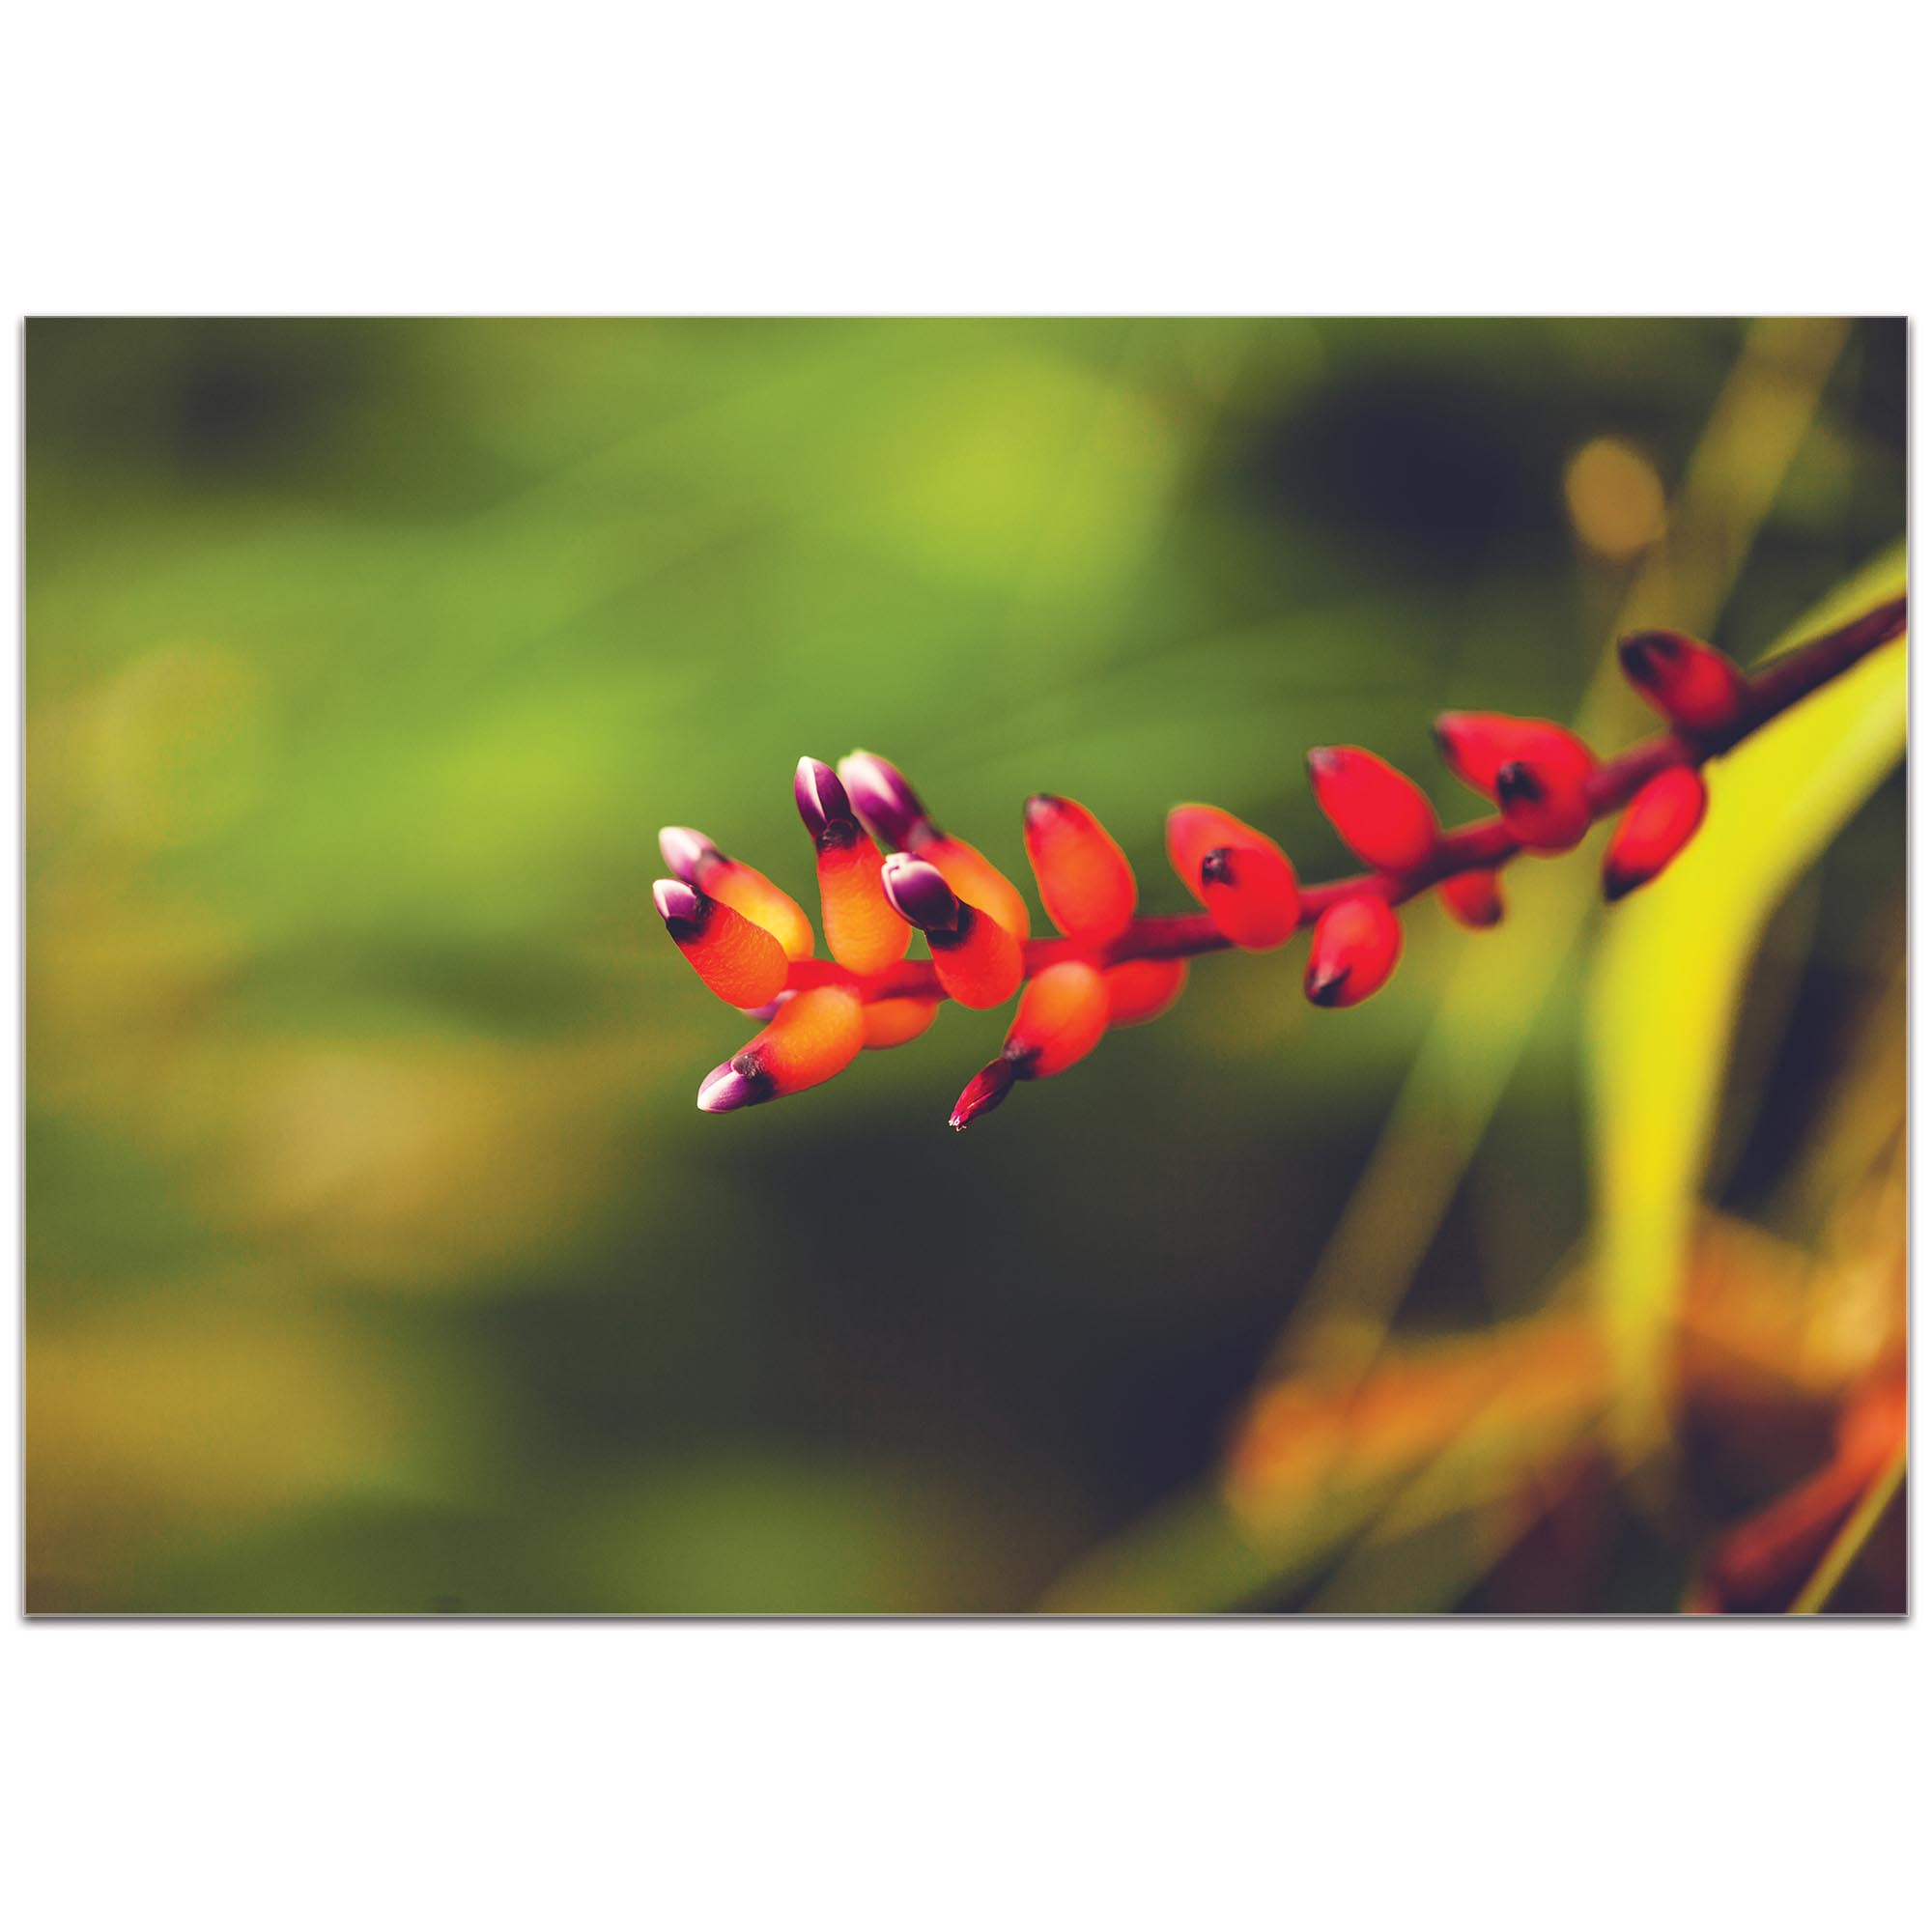 Nature Photography 'Ready to Bloom' - Flower Blossom Art on Metal or Plexiglass - Image 2